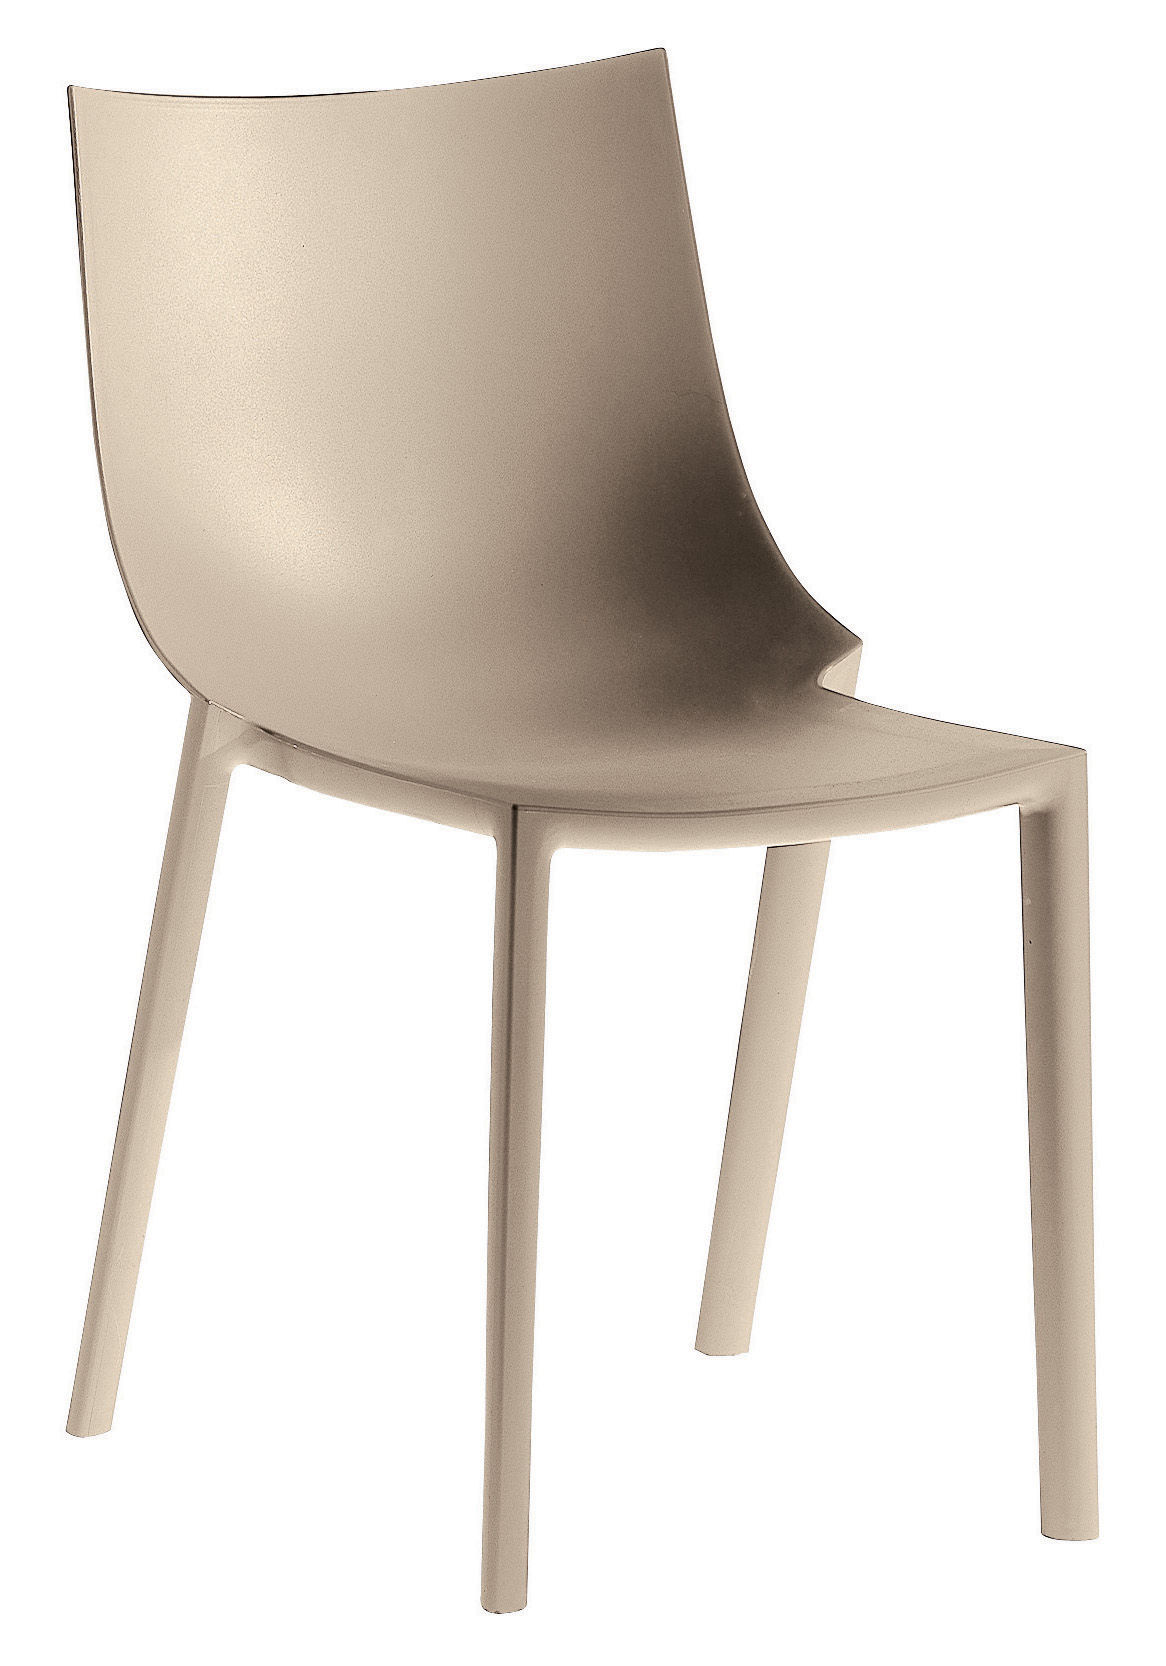 bo stacking chair plastic braun by driade. Black Bedroom Furniture Sets. Home Design Ideas